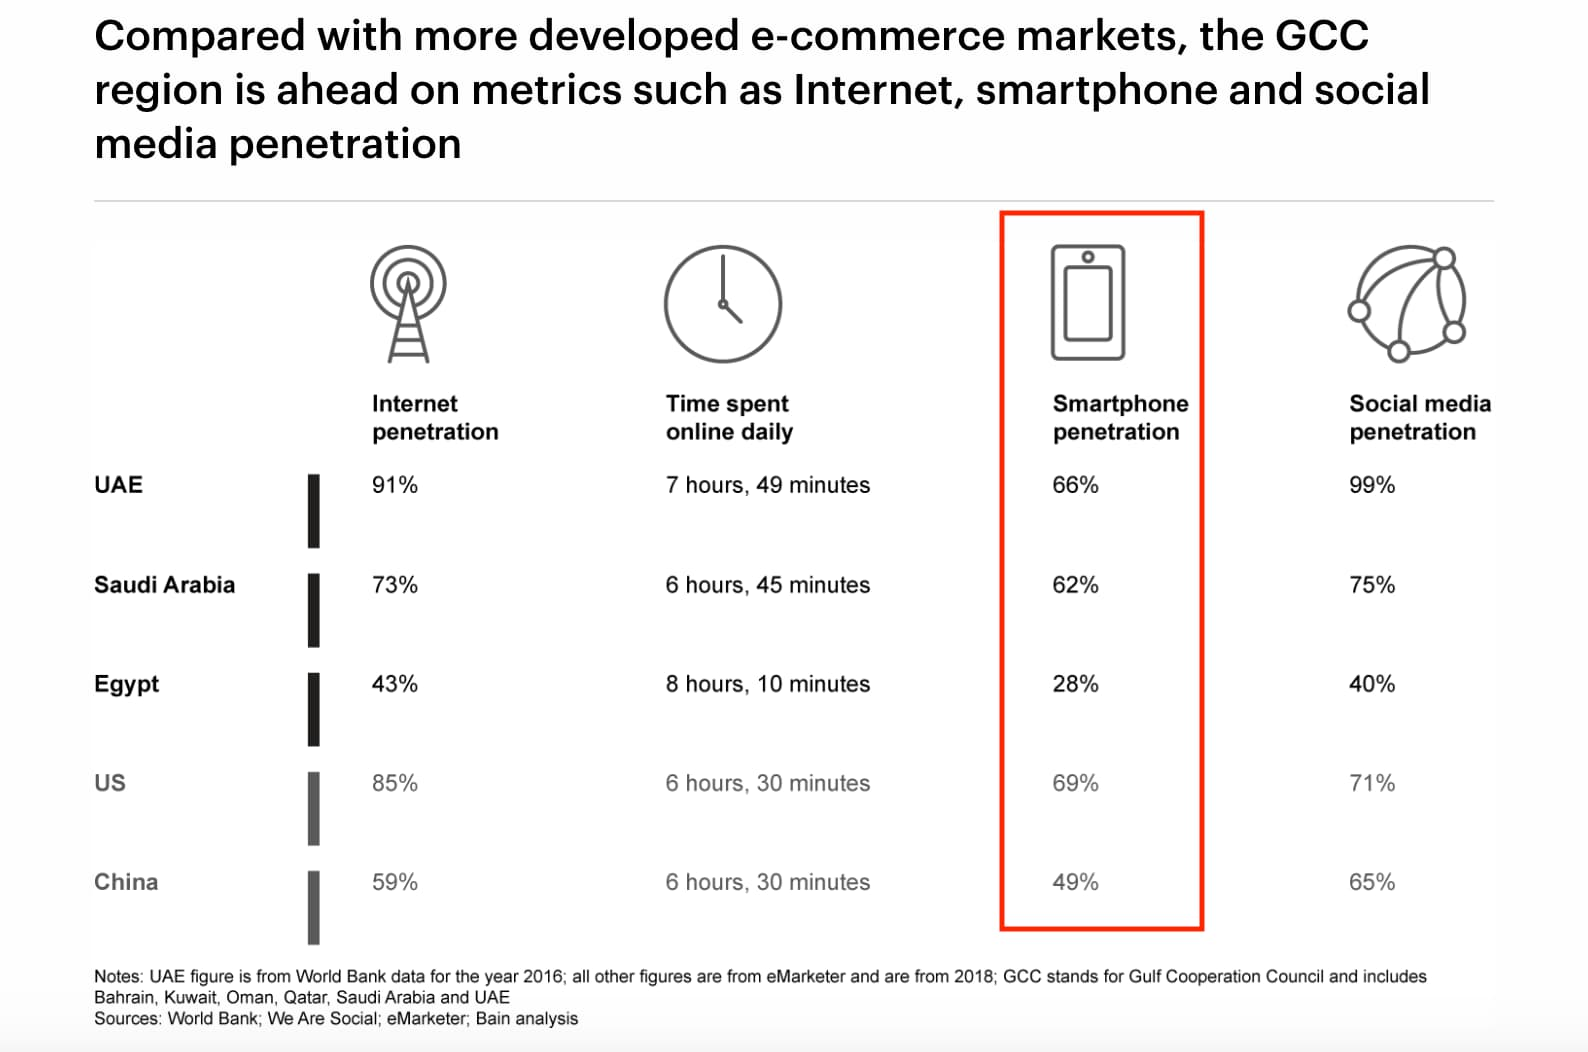 GCC Mobile penetration